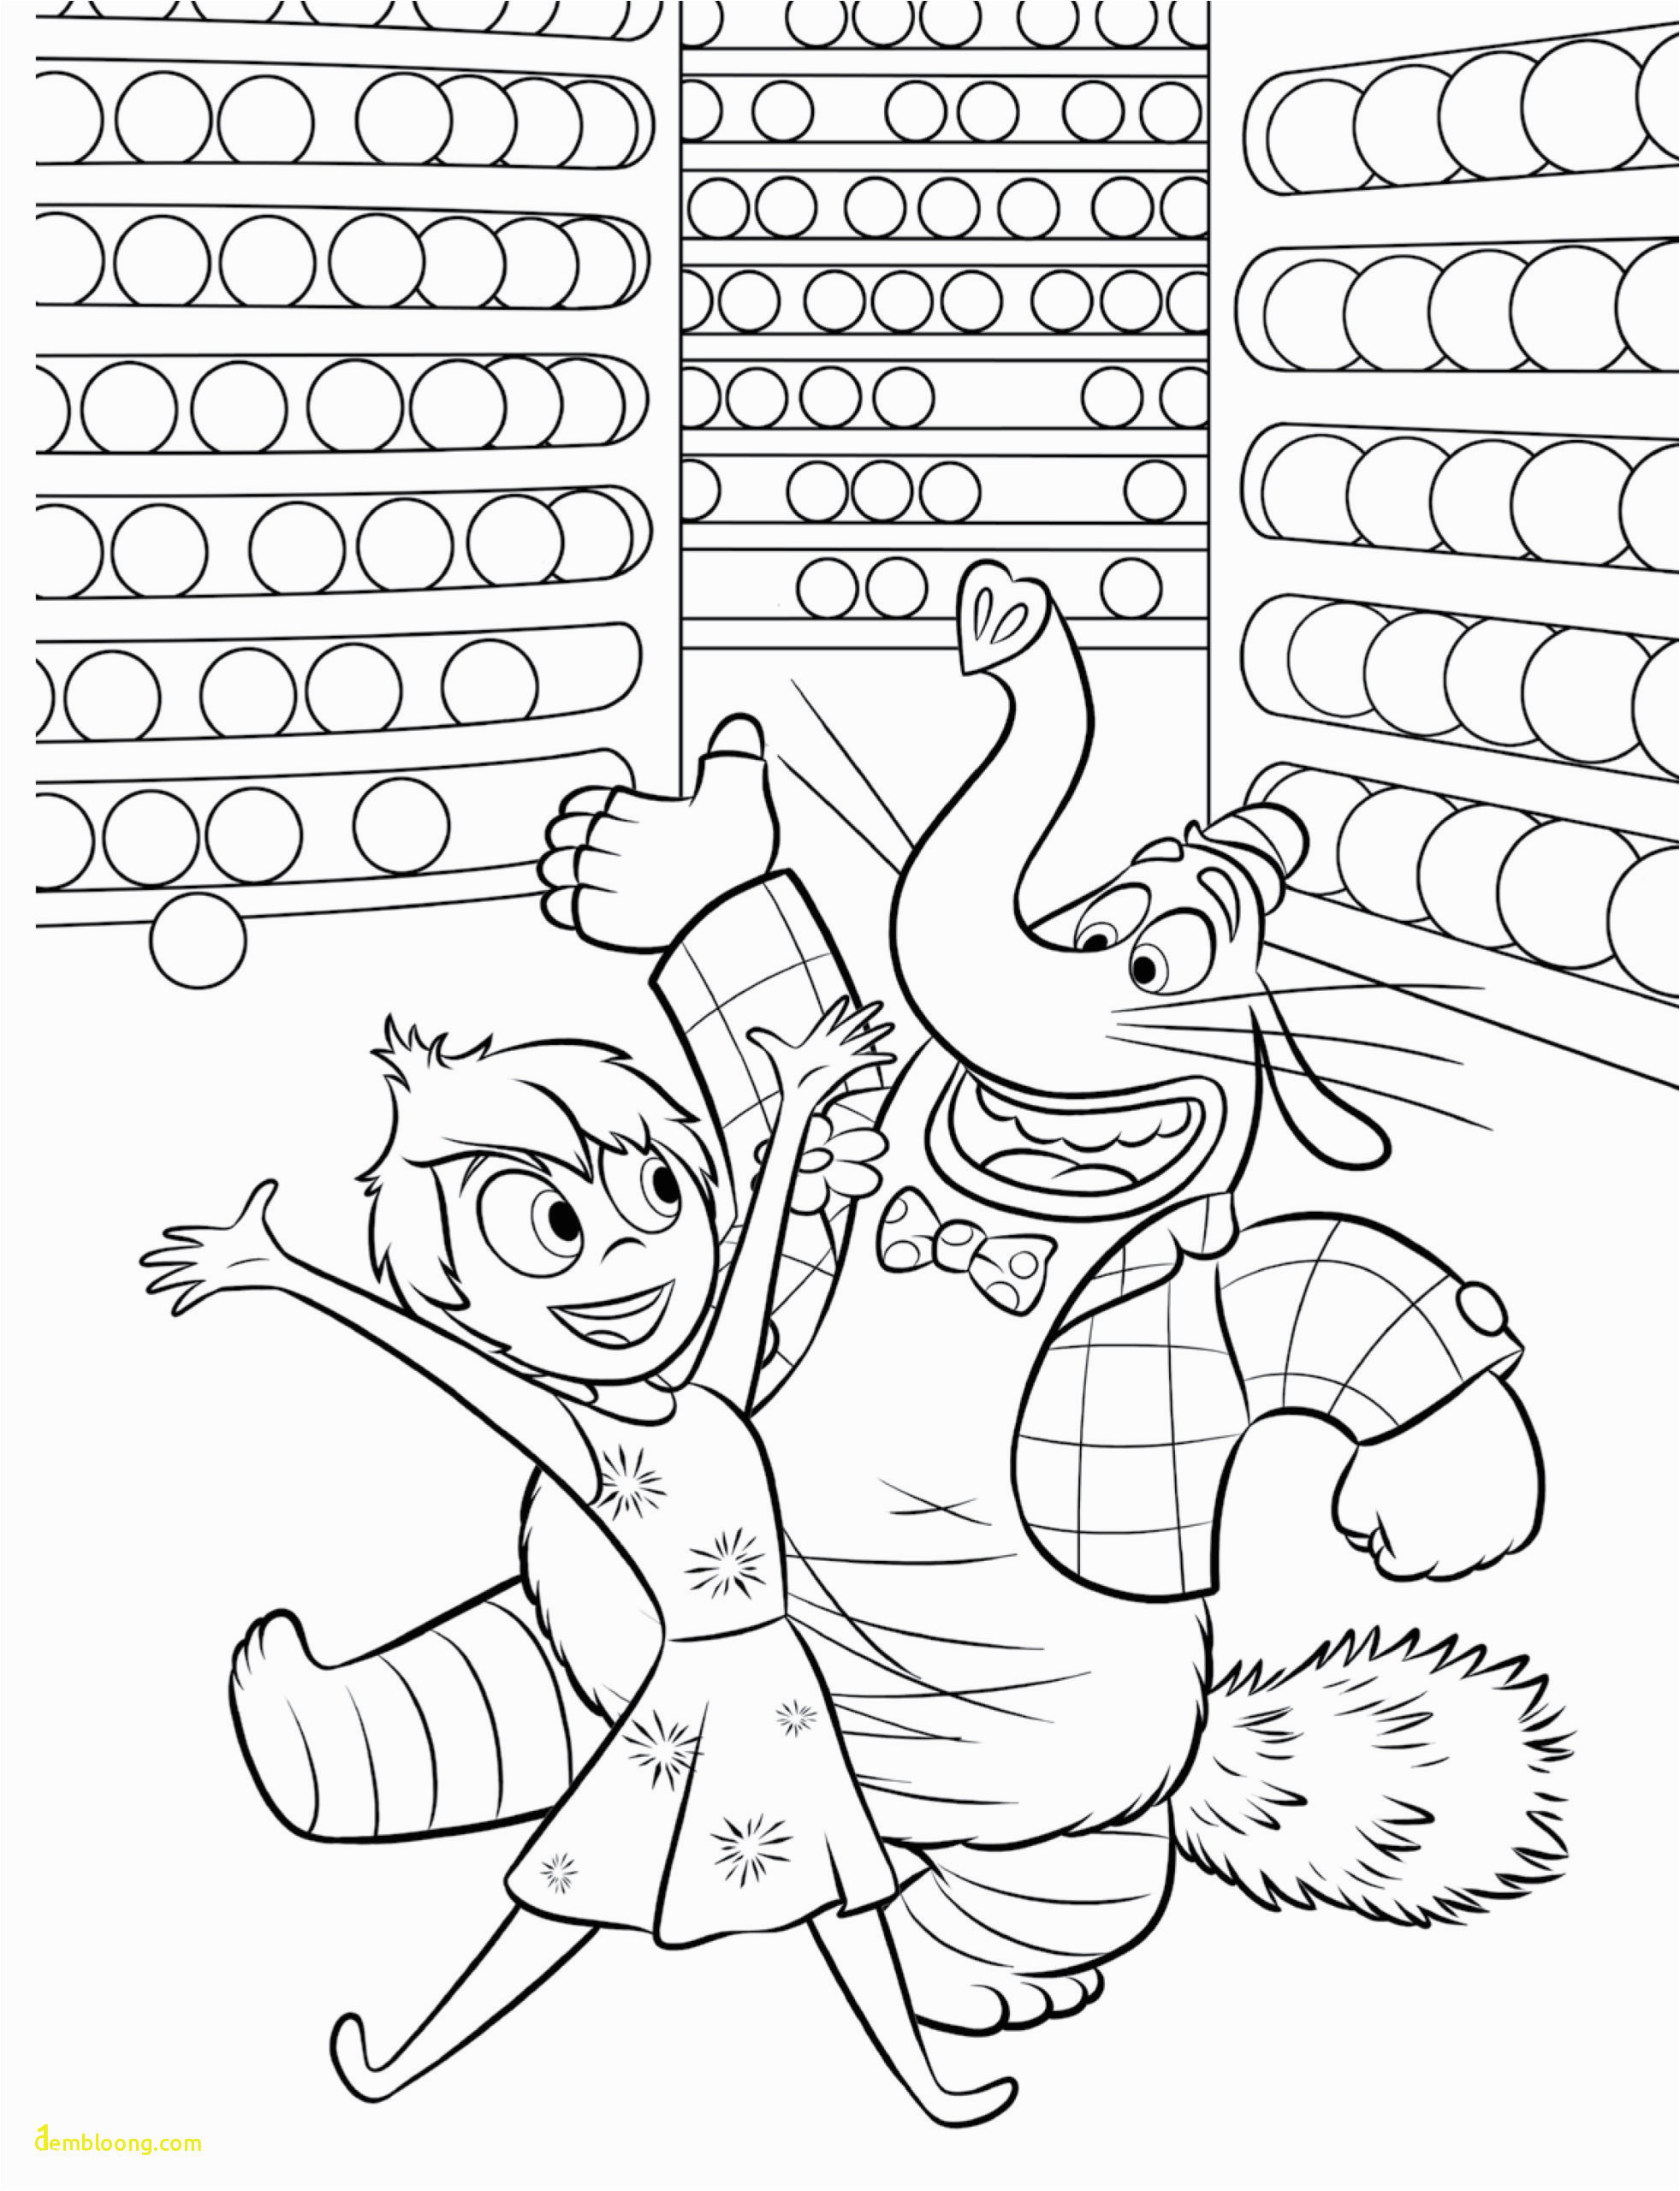 printable coloring pages for adults easy new coloring pages free printable color by number for adults of printable coloring pages for adults easy